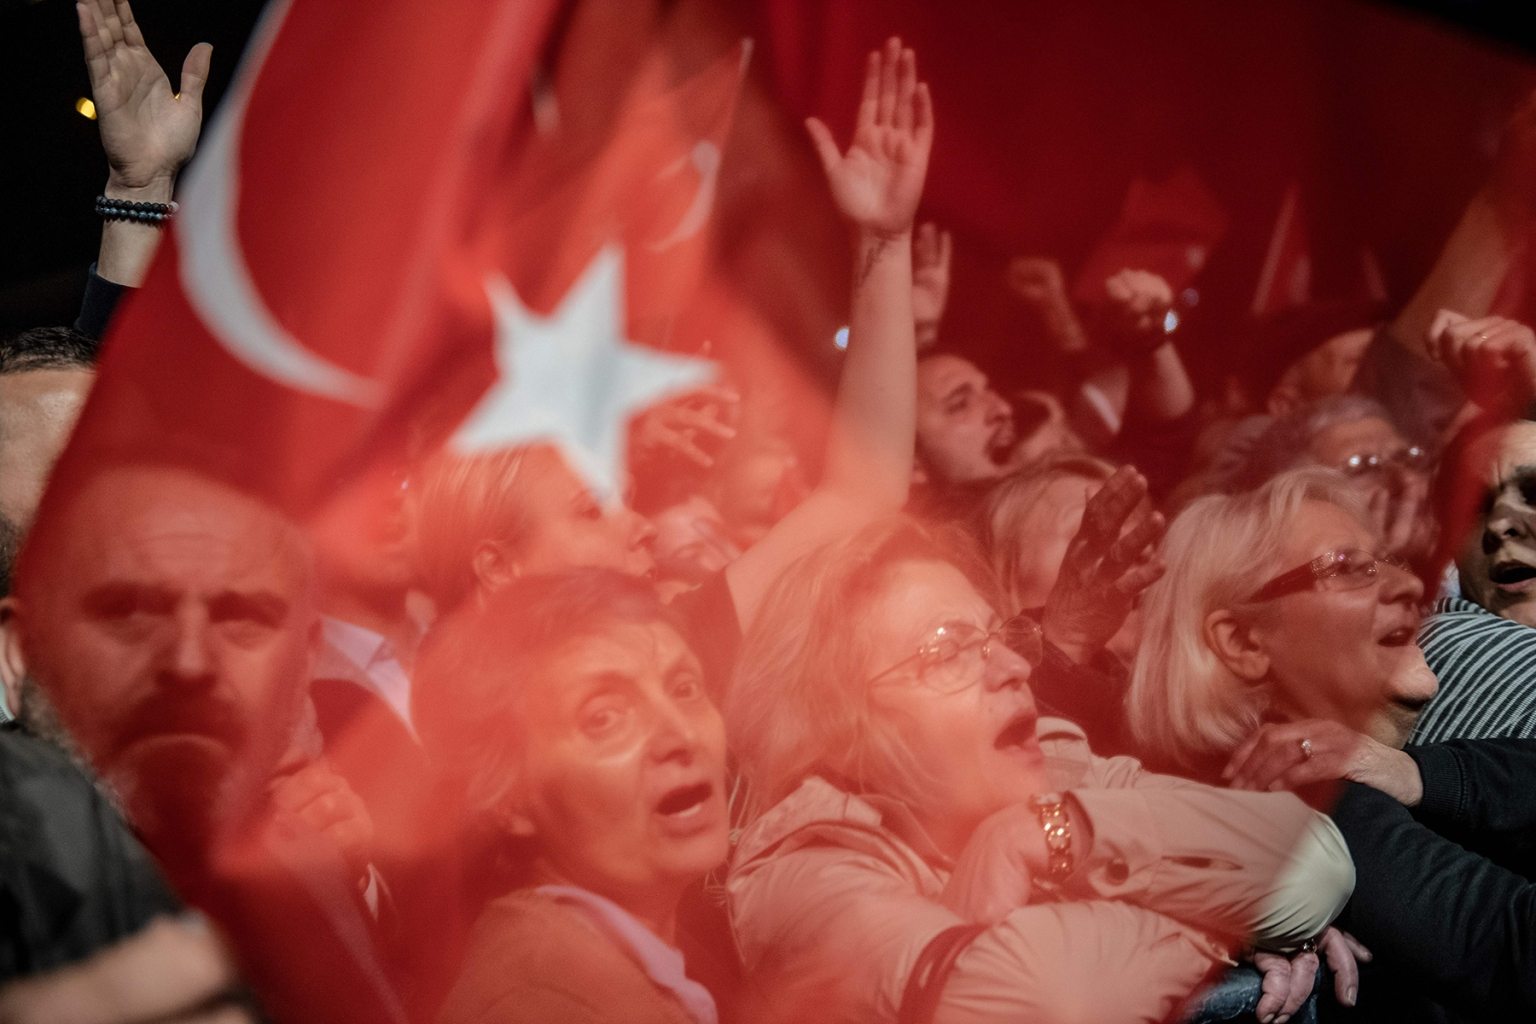 Supporters of Istanbul Mayor Ekrem Imamoglu react as they wait for him during a protest against the re-run of the city's mayoral election in Istanbul on May 6. BULENT KILIC/AFP/Getty Images